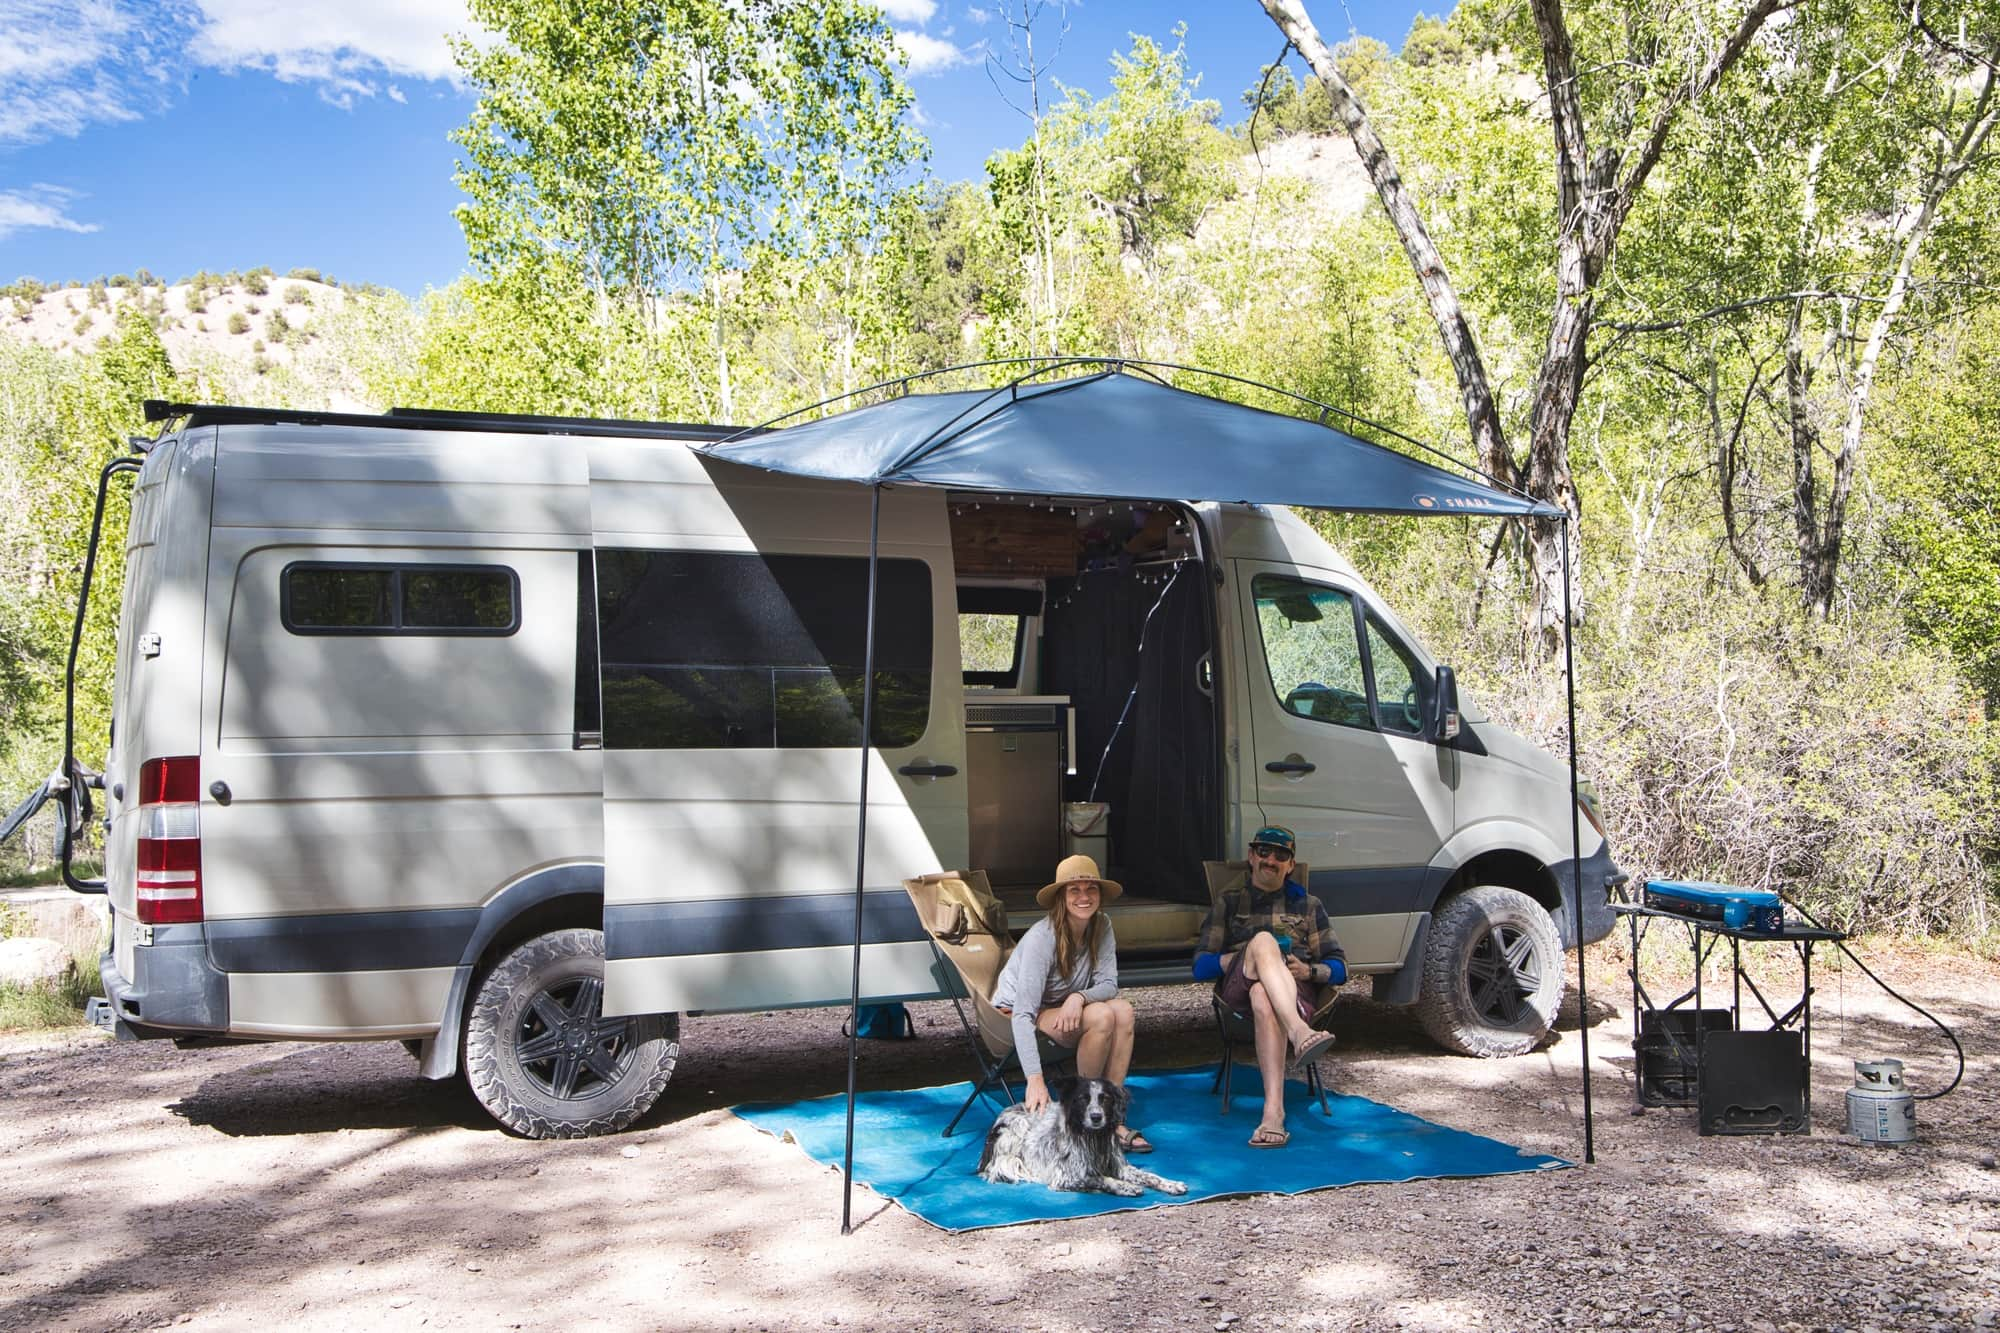 MoonShade Review: A Portable, Budget-friendly   Van Awning